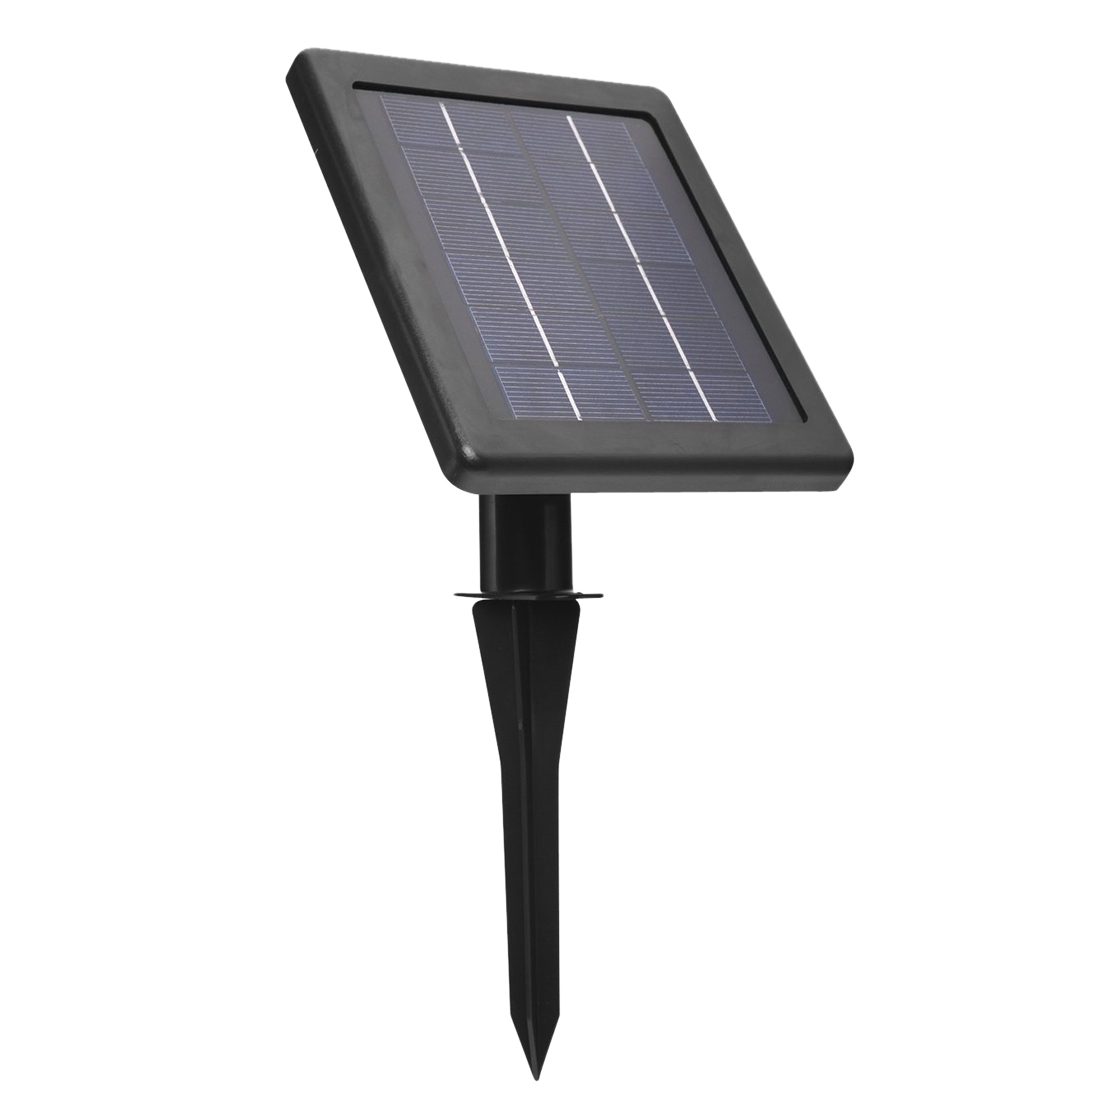 Rechargeable Waterproof Solar Powered 30 LED Spot Light White Lamp with Lithium Battery Inside for Lawn, Garden, Hotel, etc. solar battery powered butterfly random color